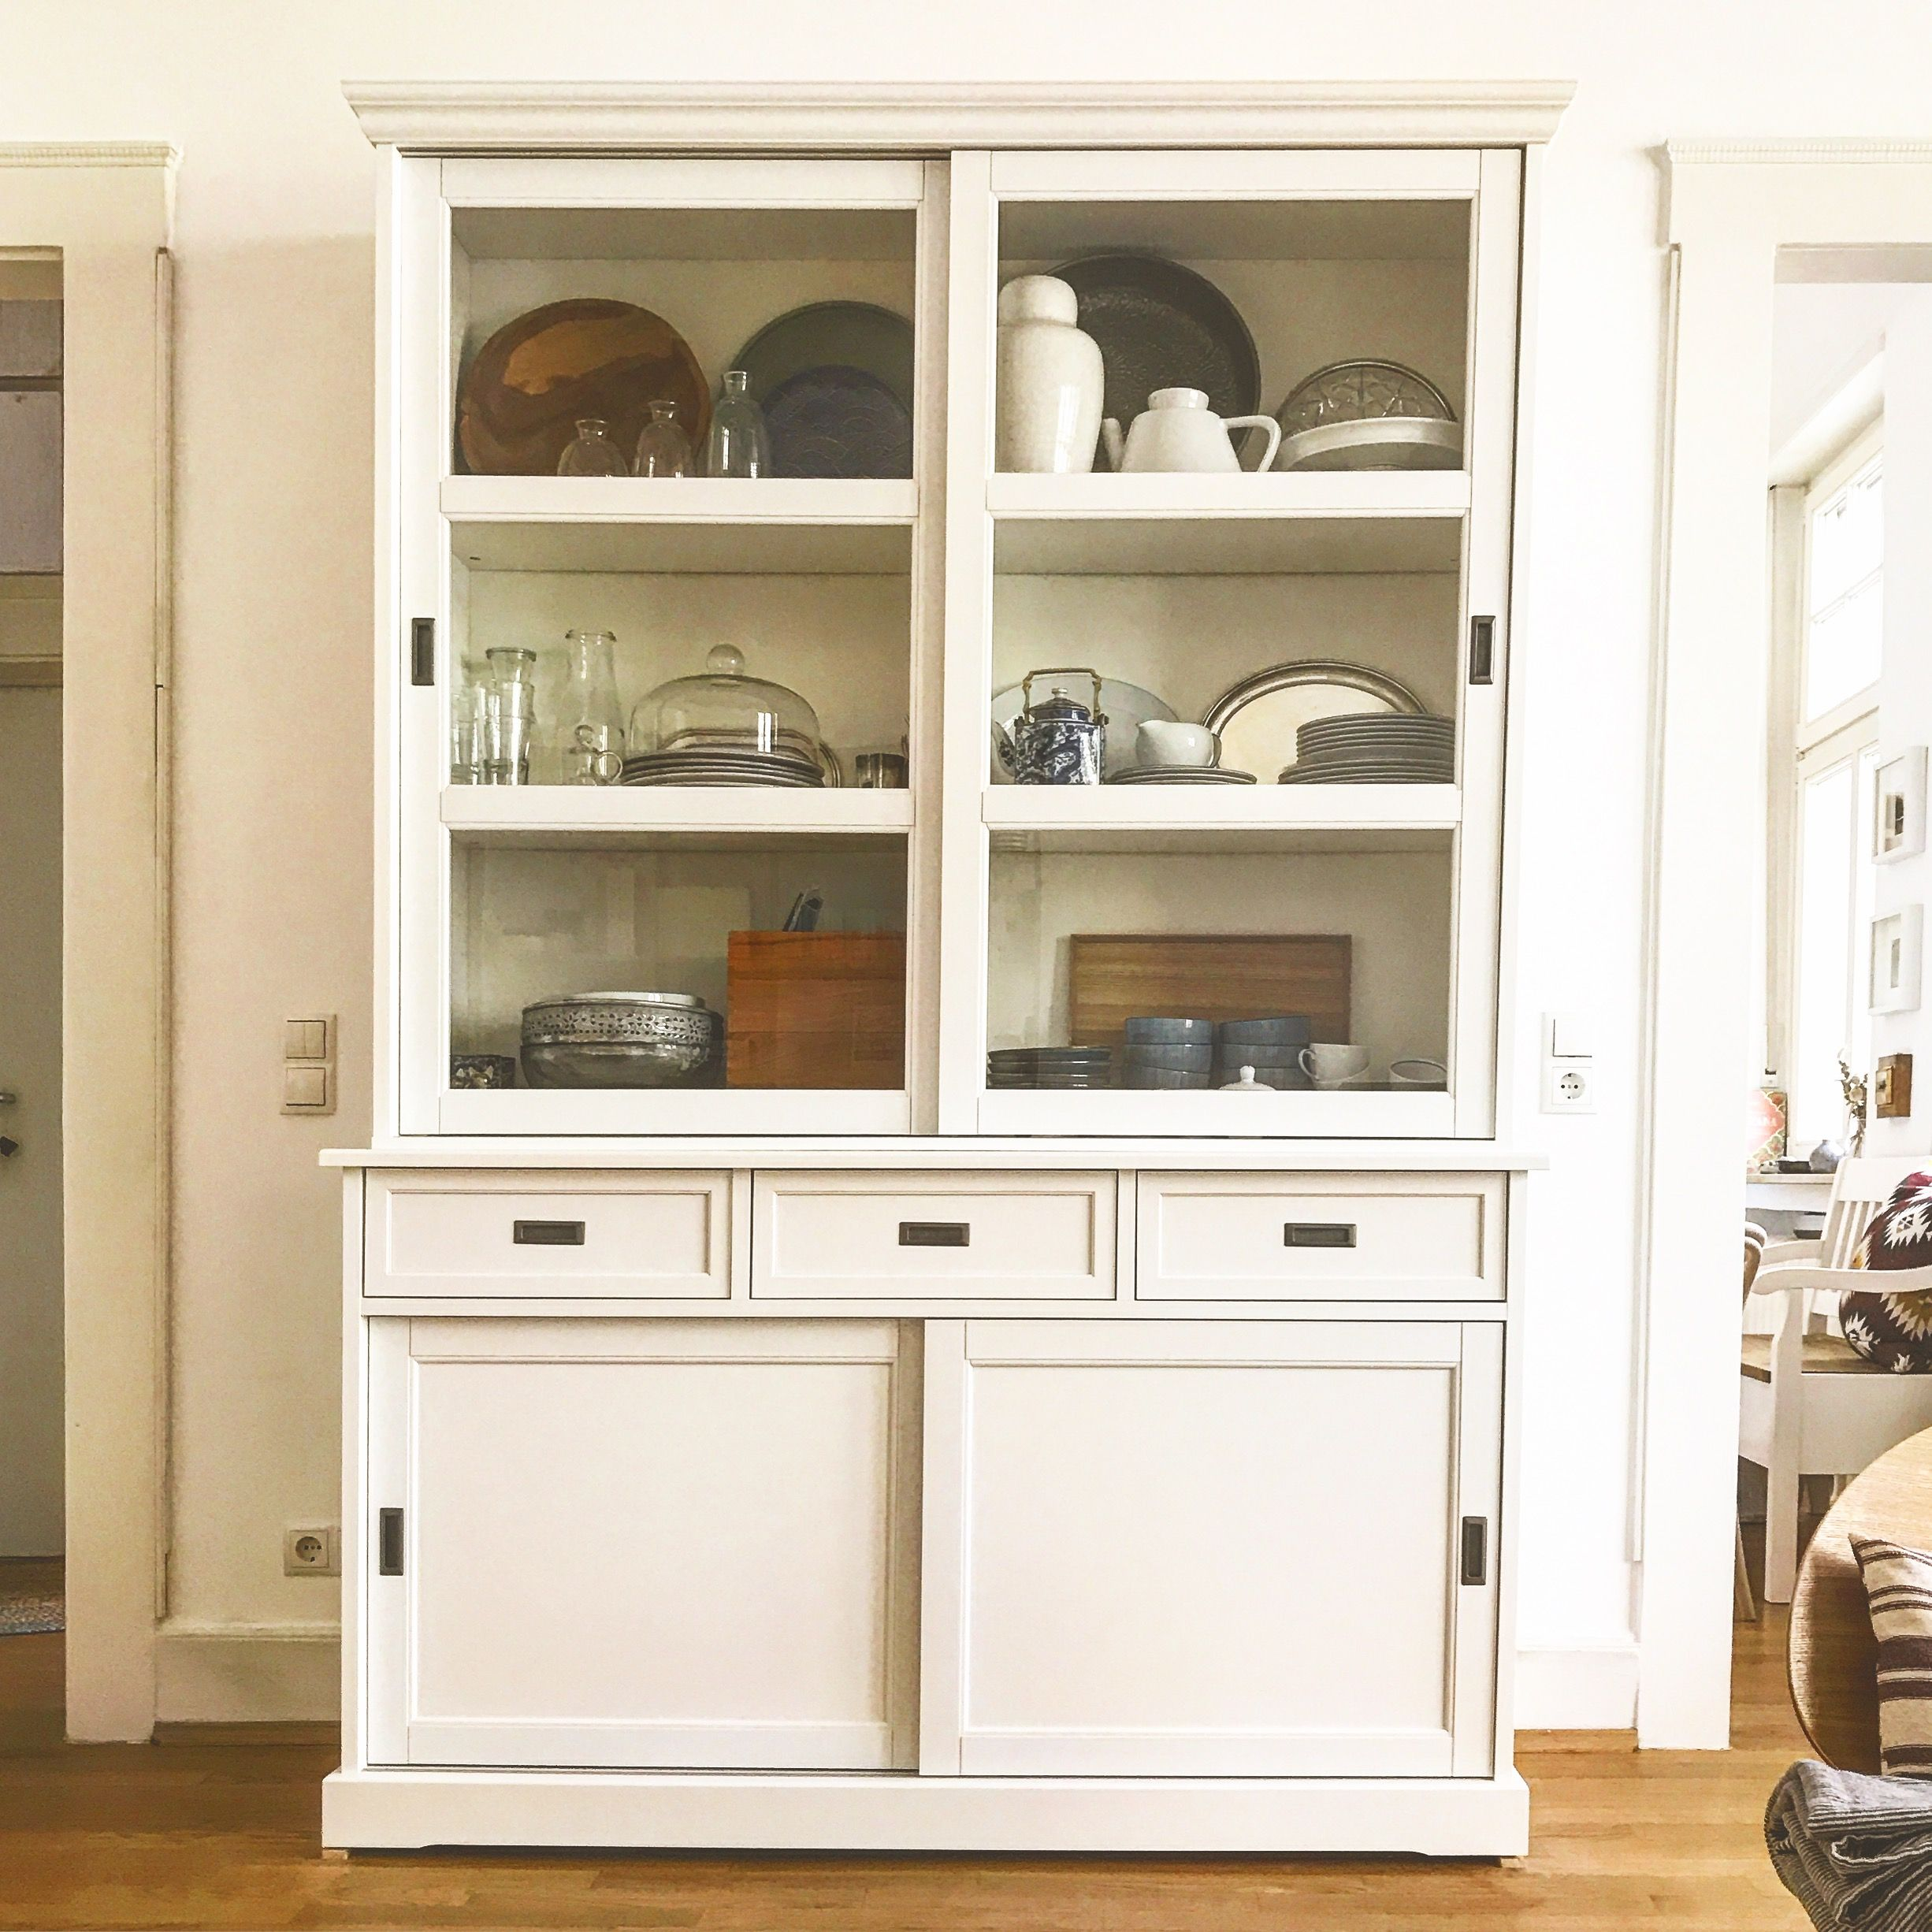 White Cabinet Kitchen Cabinet Ikea Cabinet China Cabinet Tableware In 2020 Ikea Cabinets Ikea China Cabinet China Cabinet